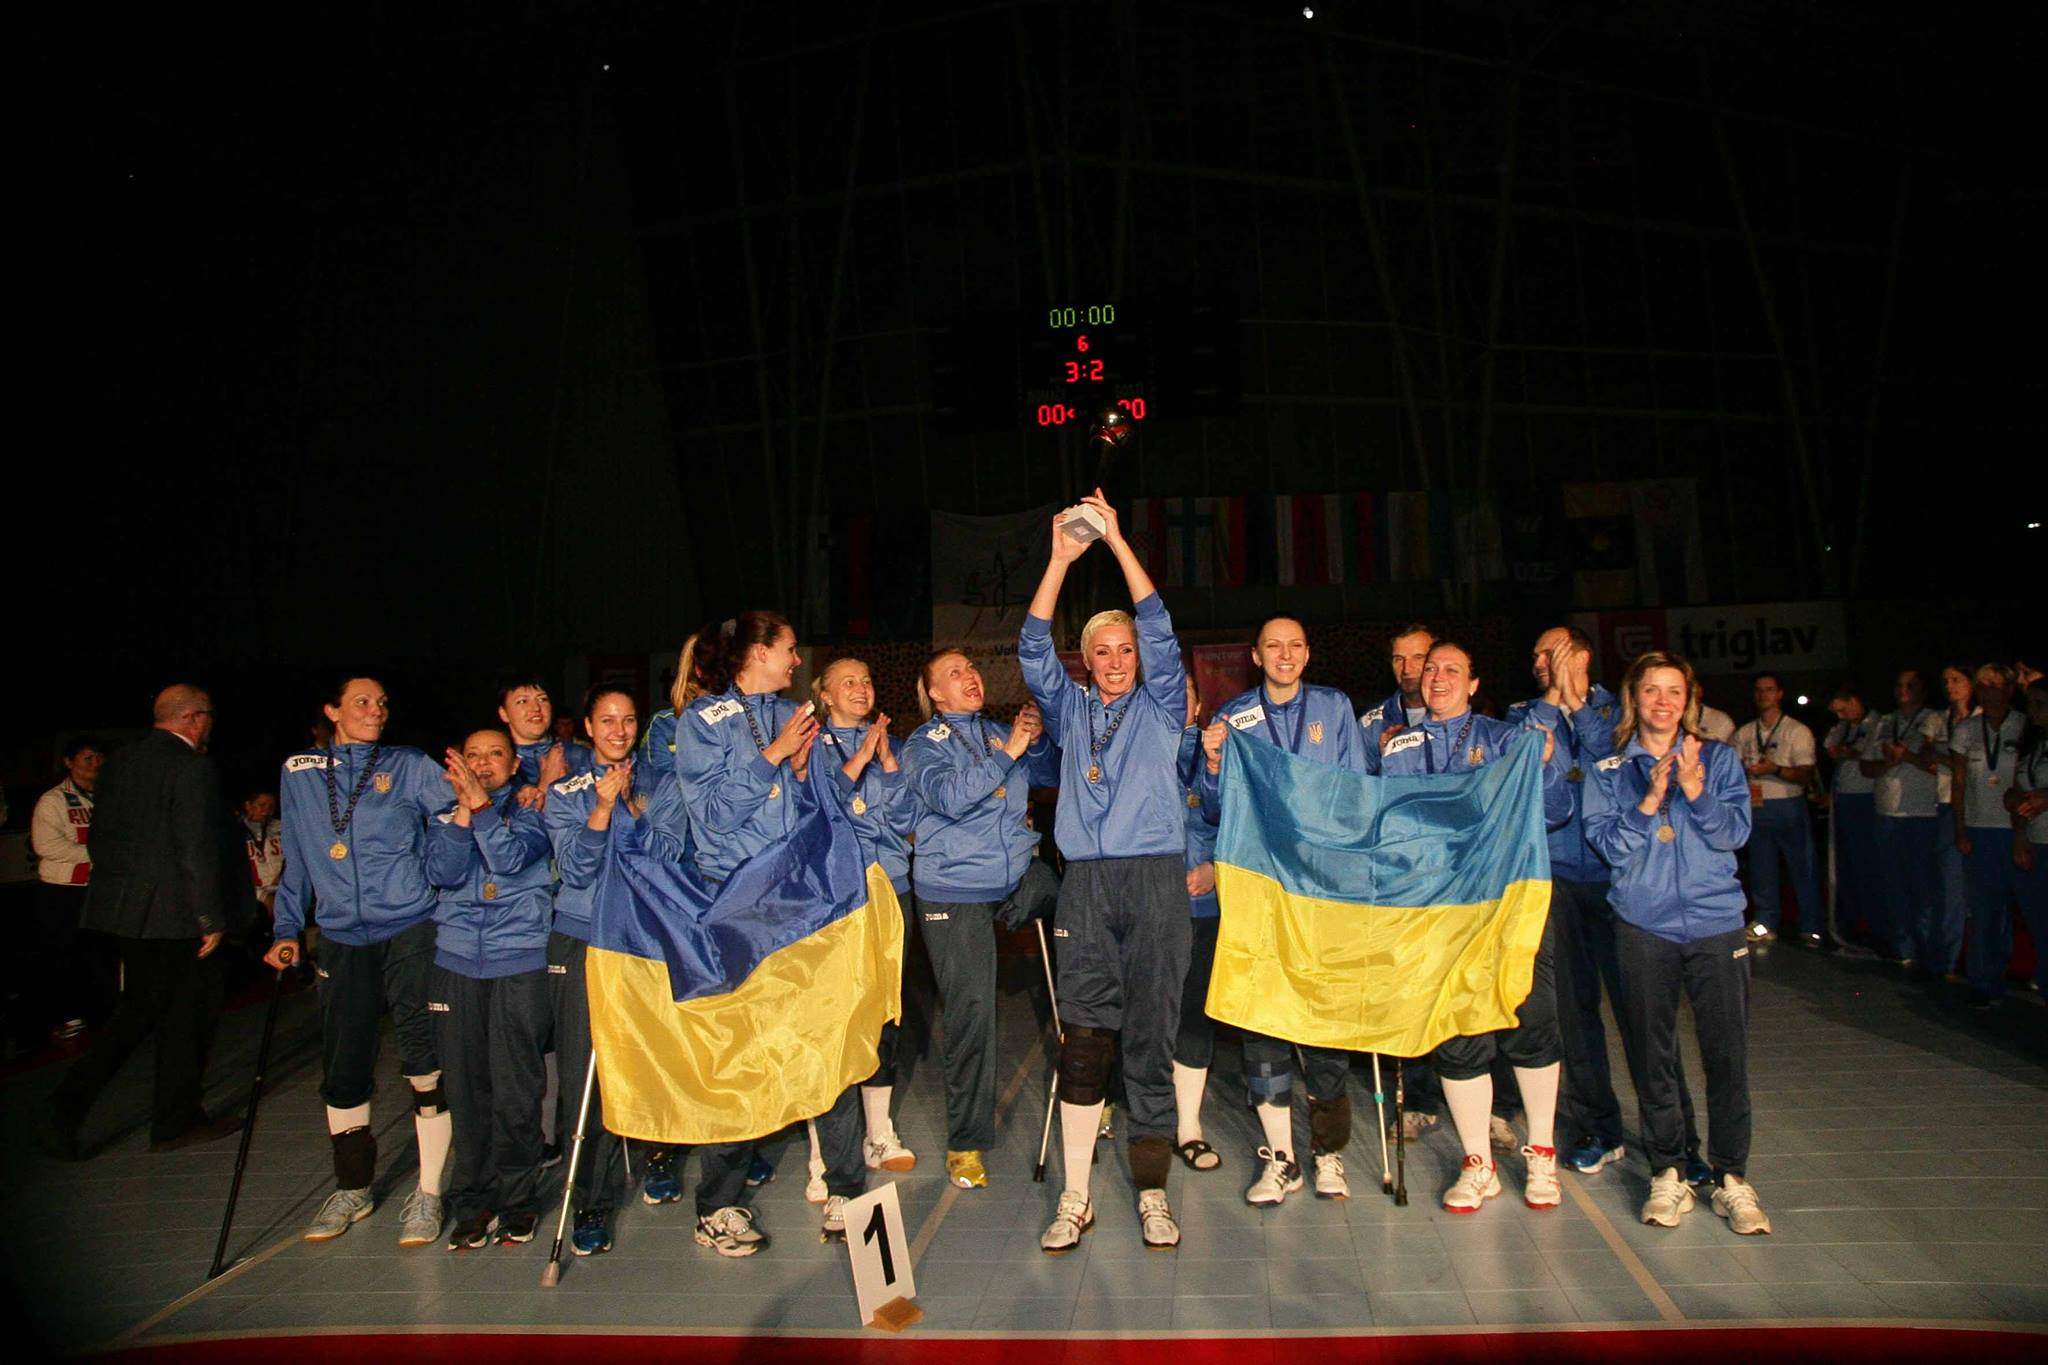 Ukraine, the 7th team to qualify for Rio2016